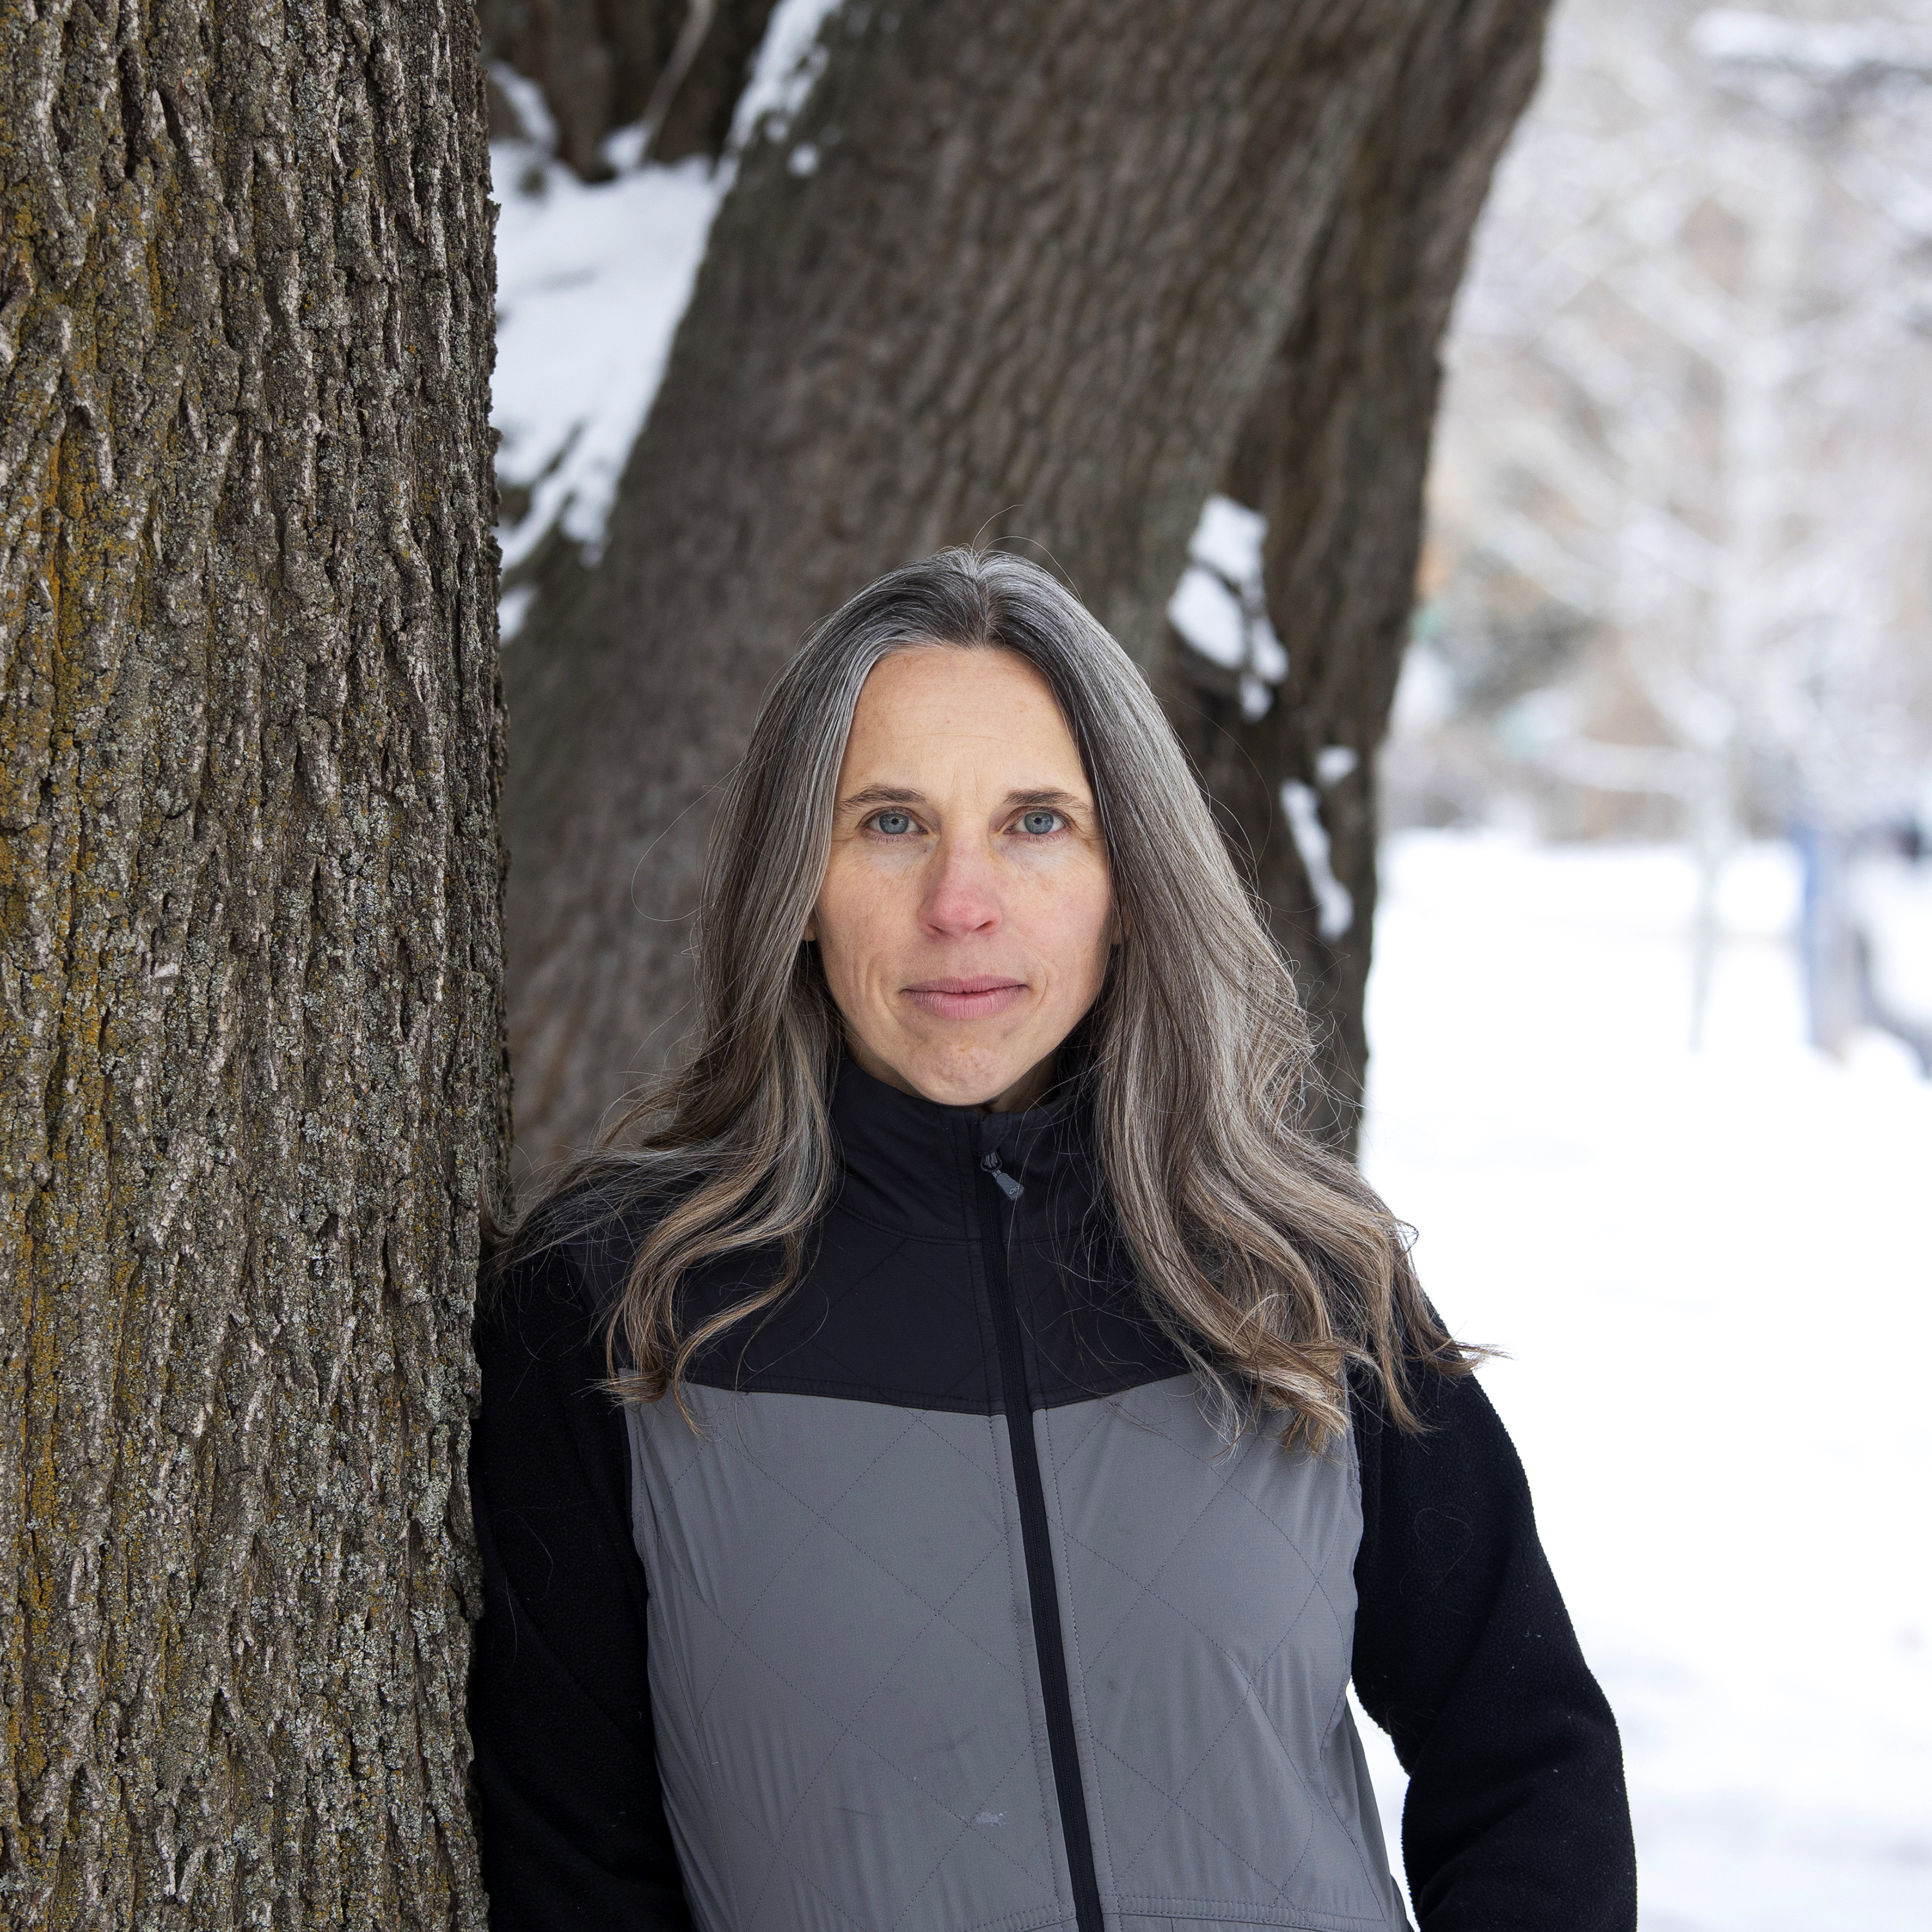 On December 15, 2020, in Bozeman, Montana, Angela Kociolek stands for a portrait by a tree in her front yard.